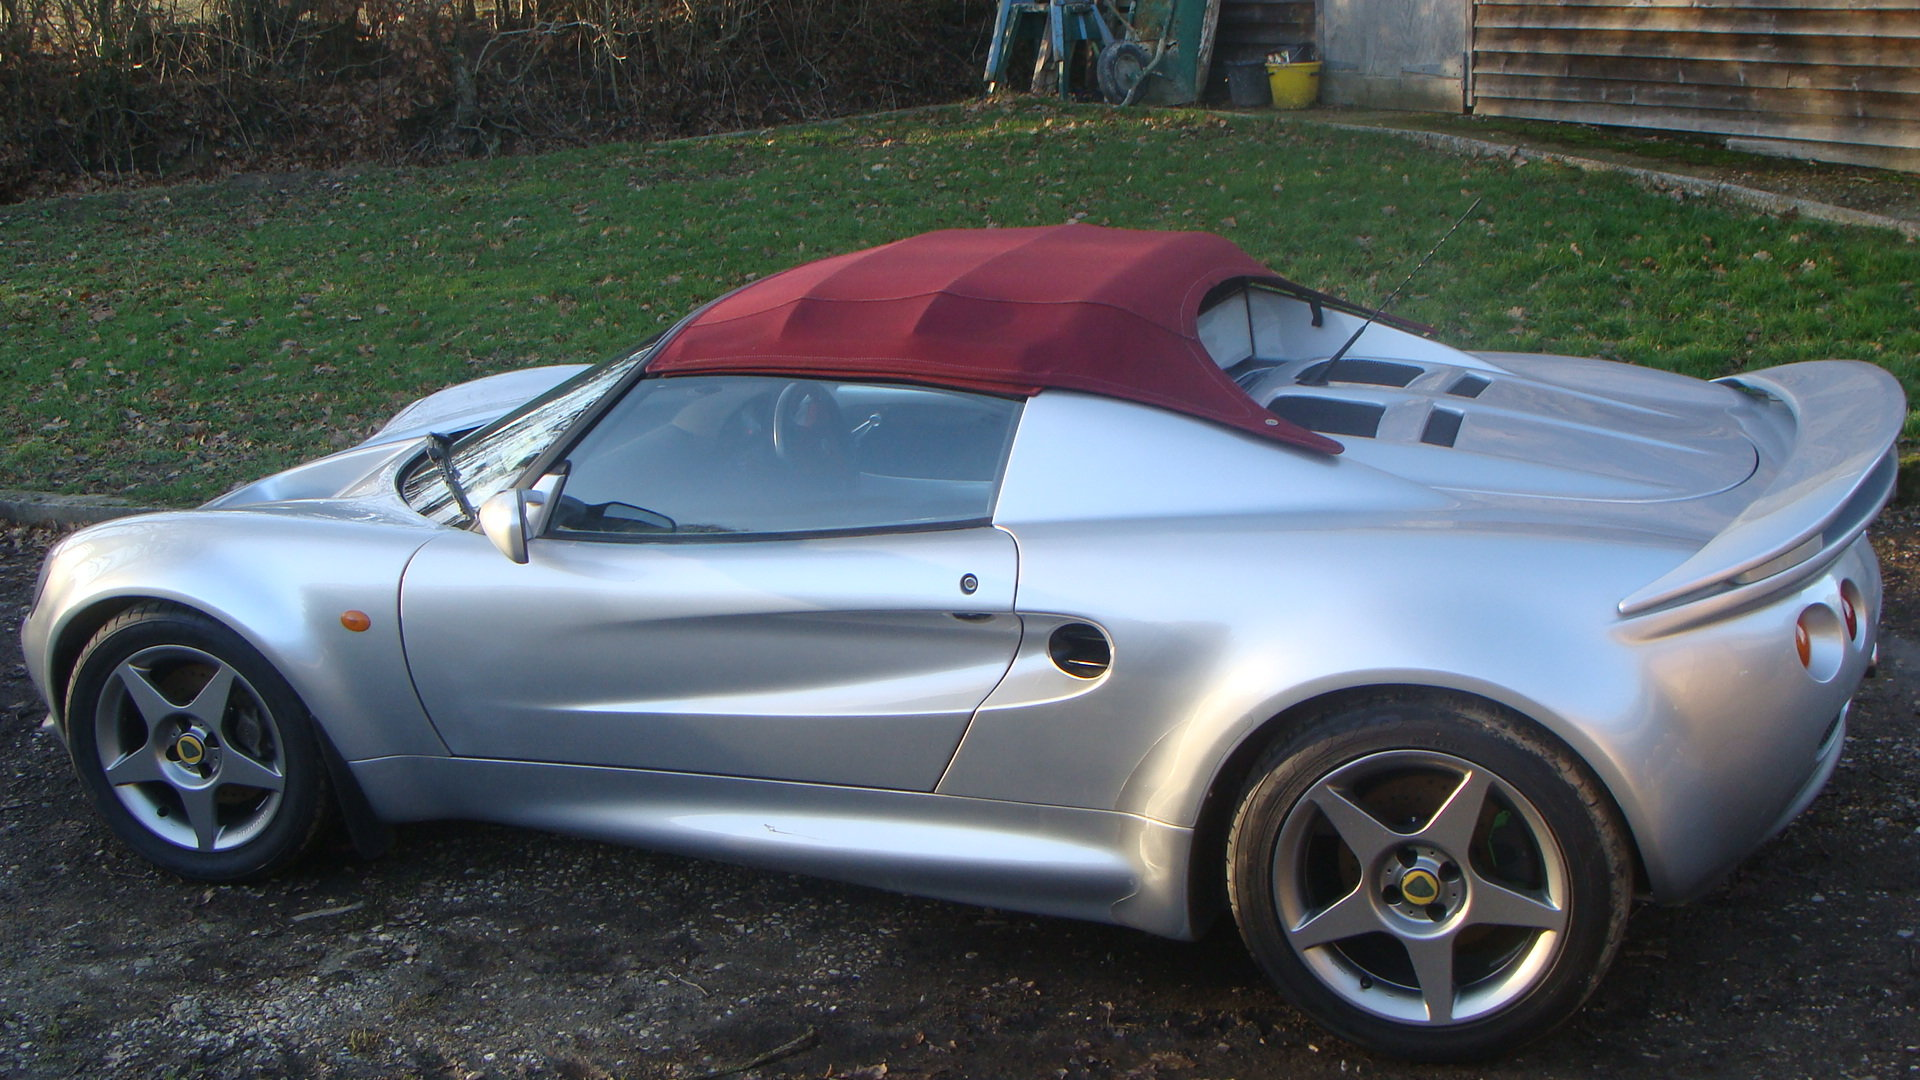 2000 Lotus Elise 160 Sport roadster For Sale (picture 4 of 6)